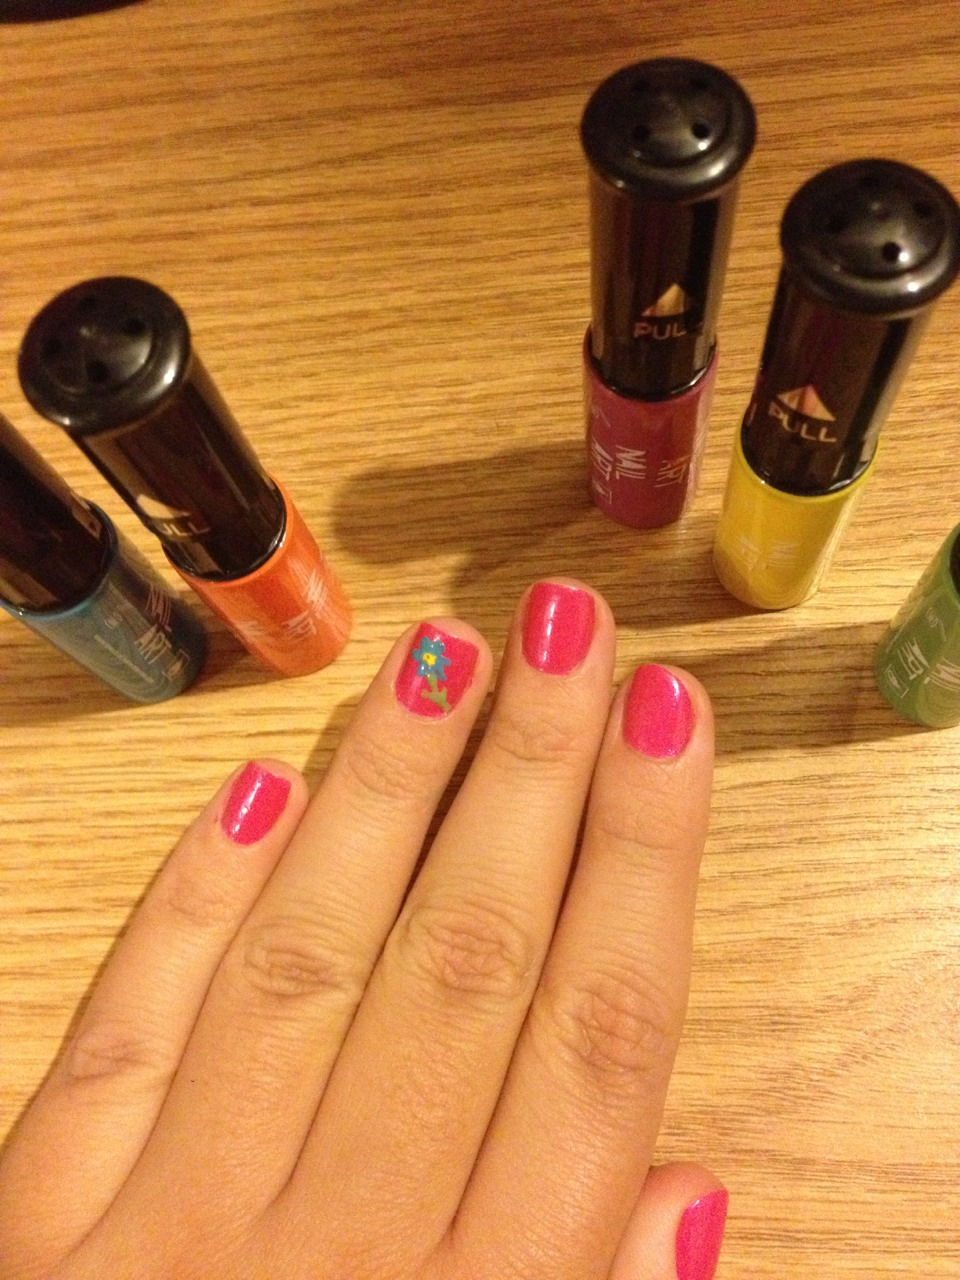 Perfect for experimenting with nail art :)